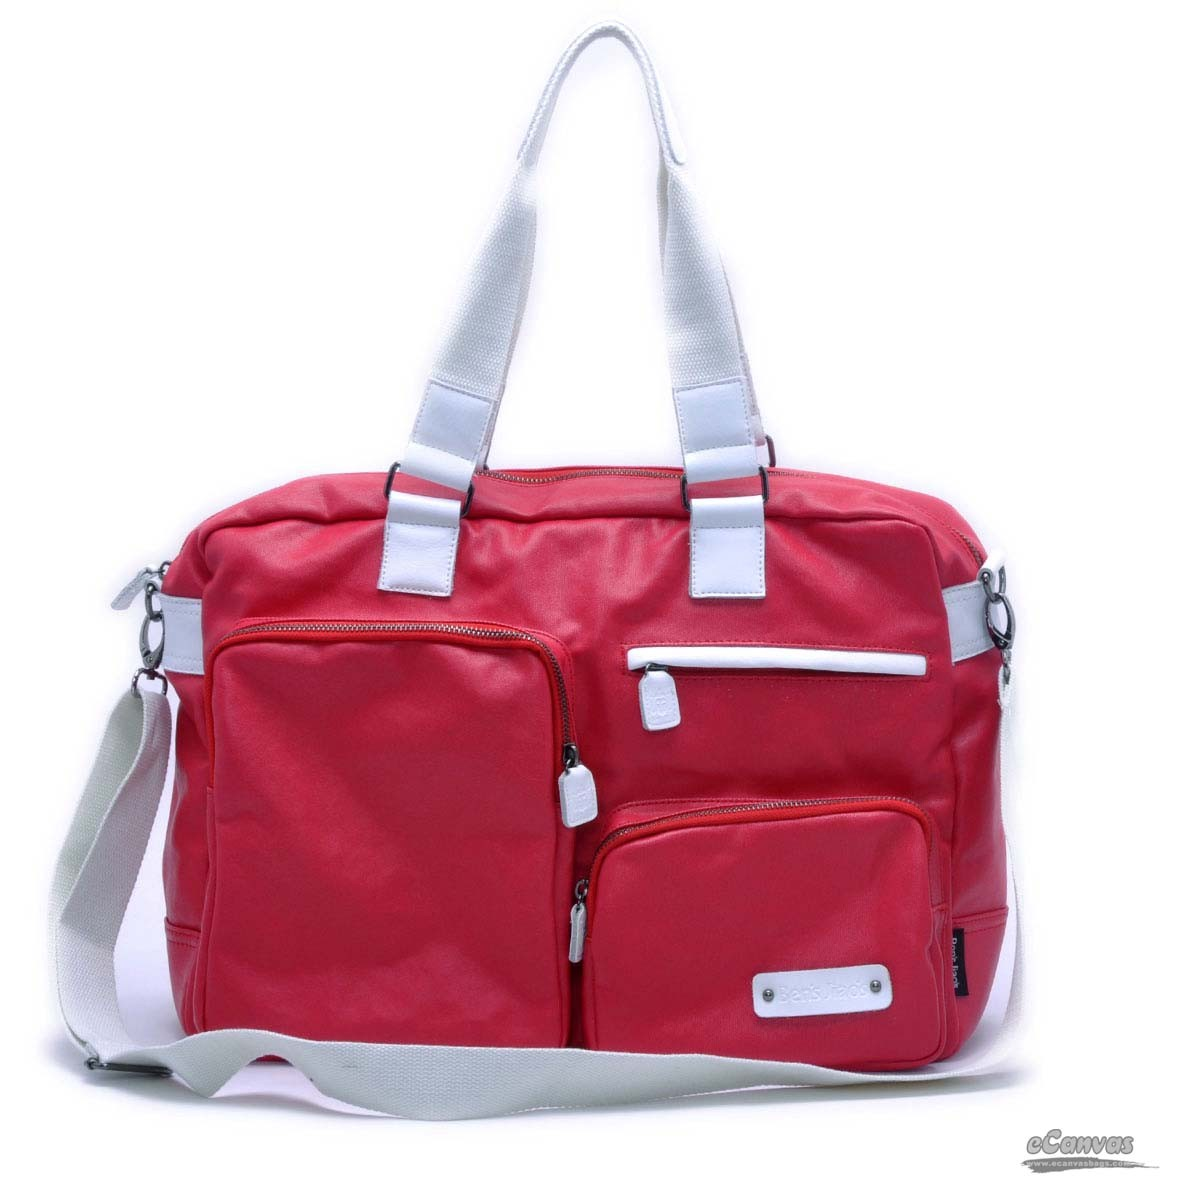 Cross body bag, lovers school bag, coated canvas tote, blue, red ...